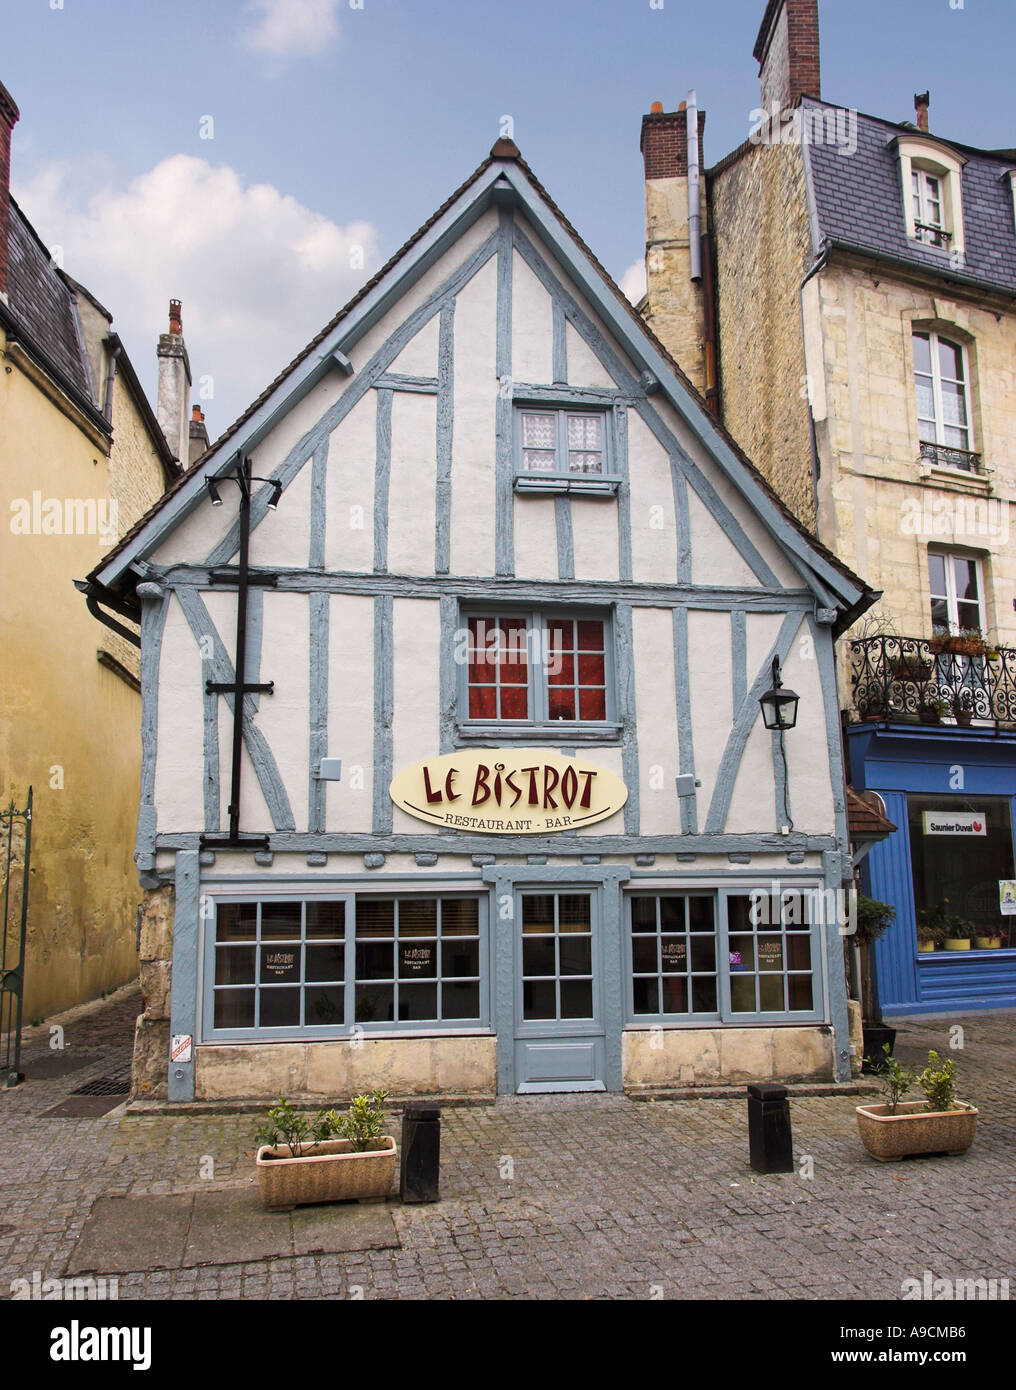 Old bistro building in the cultural quarter of Caen, Normandy, France - Stock Image